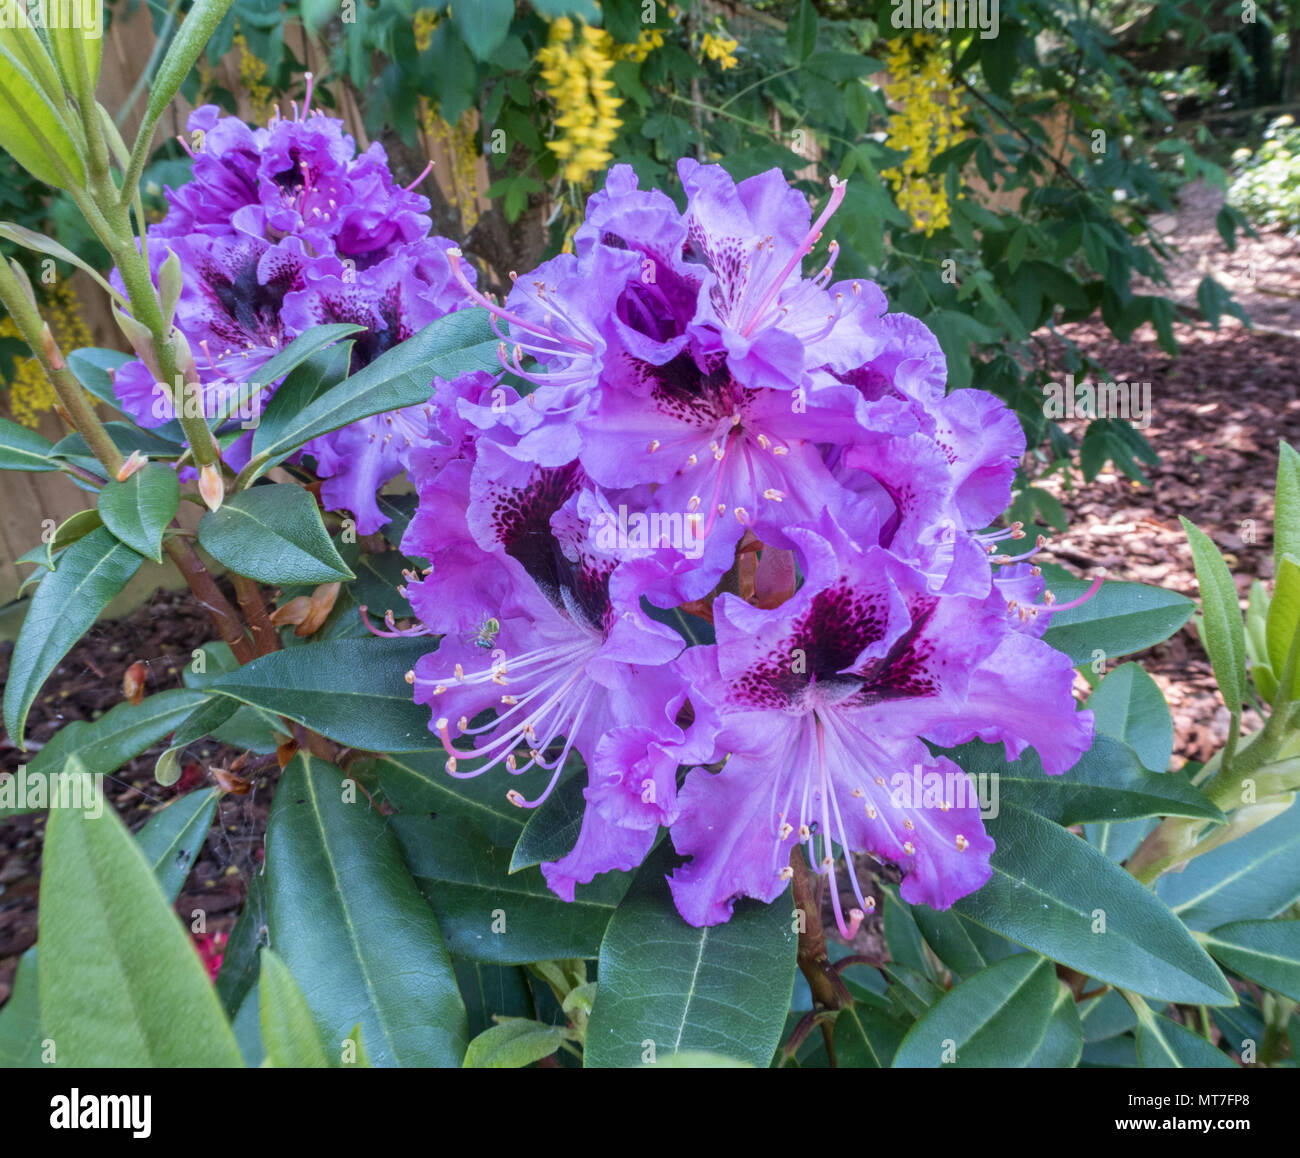 Rhododendron hybrid Blaue Jungs, tolerant of neutral soil conditions. - Stock Image